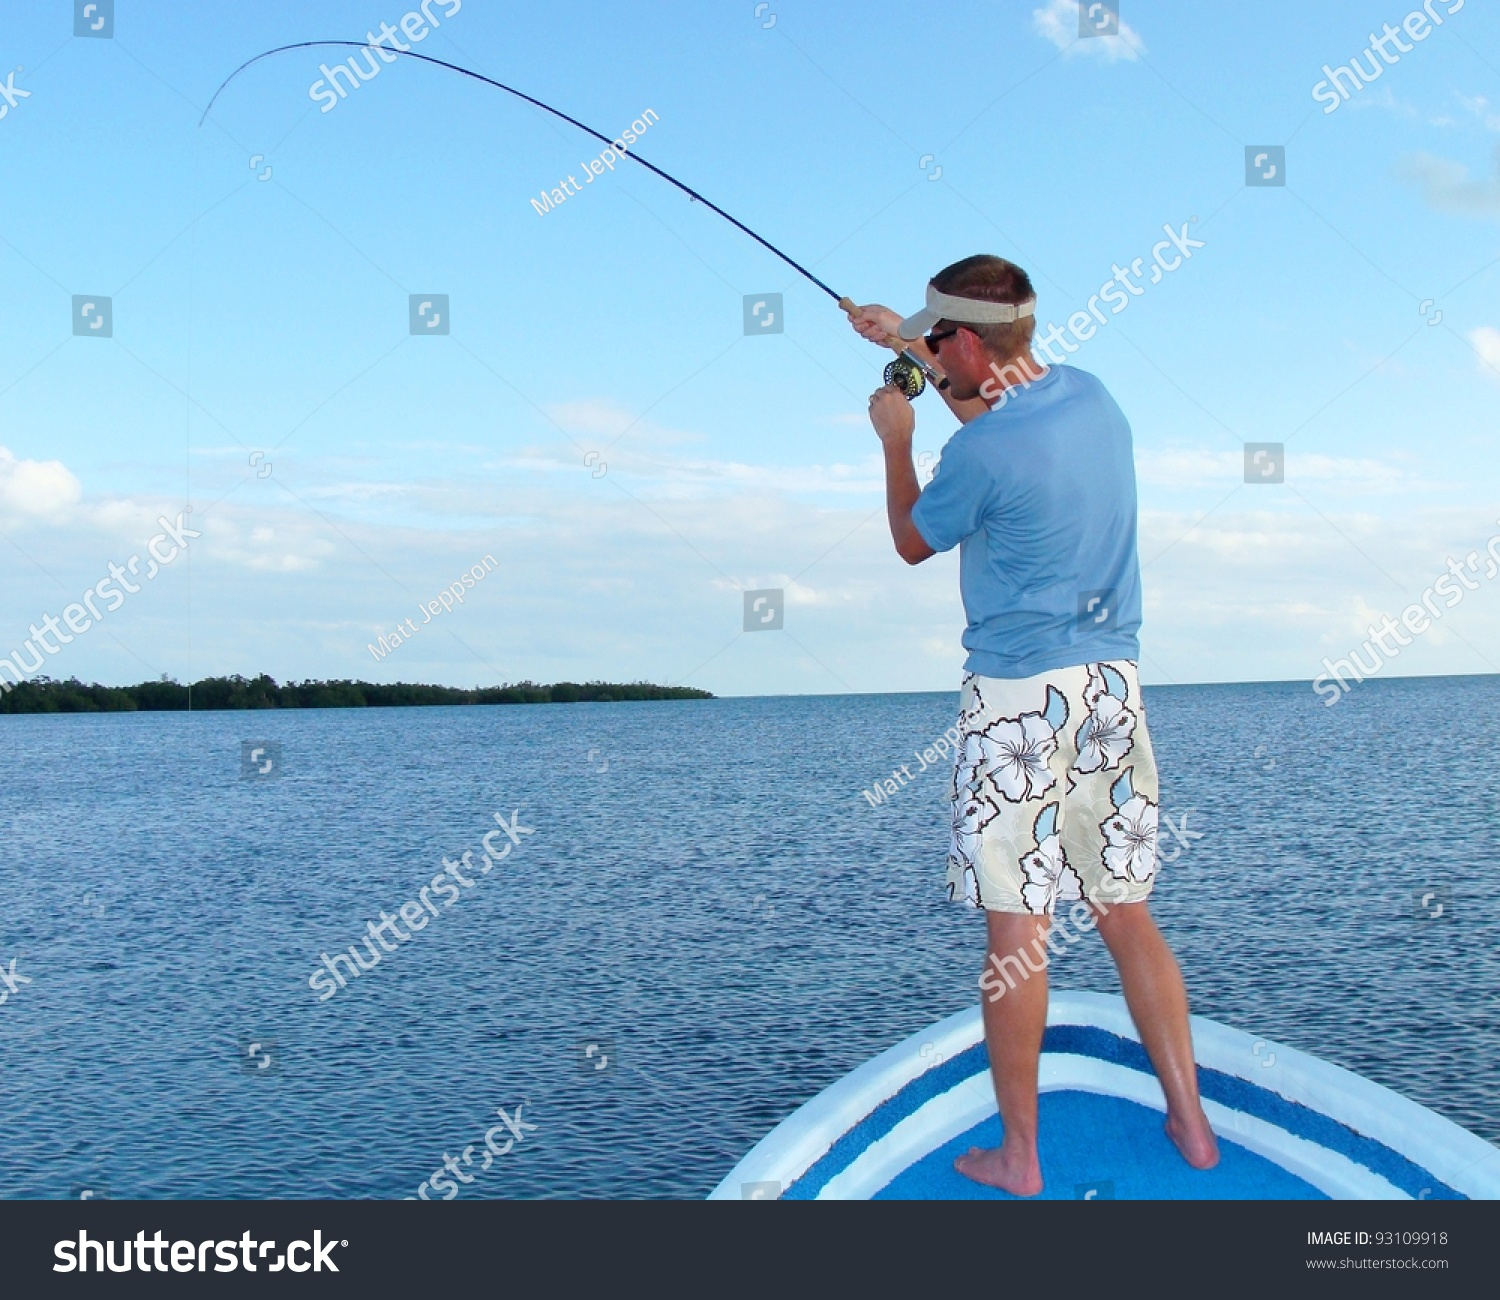 Saltwater fly fishing for bonefish fighting a big fish for Big fish in the ocean